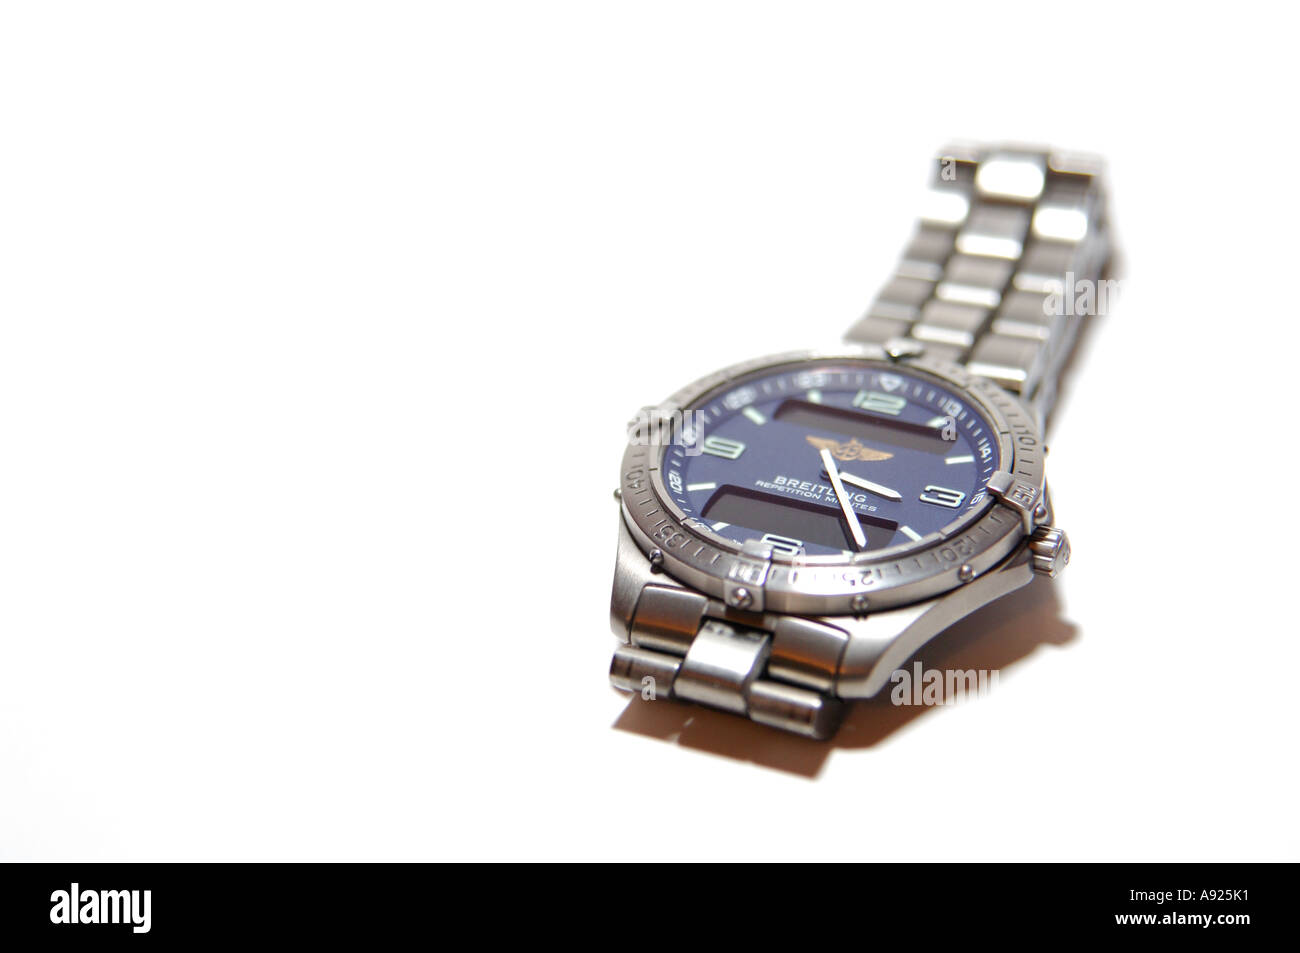 Breitling Aerospace repetition minutes titanium gents wristwatch white background - Stock Image